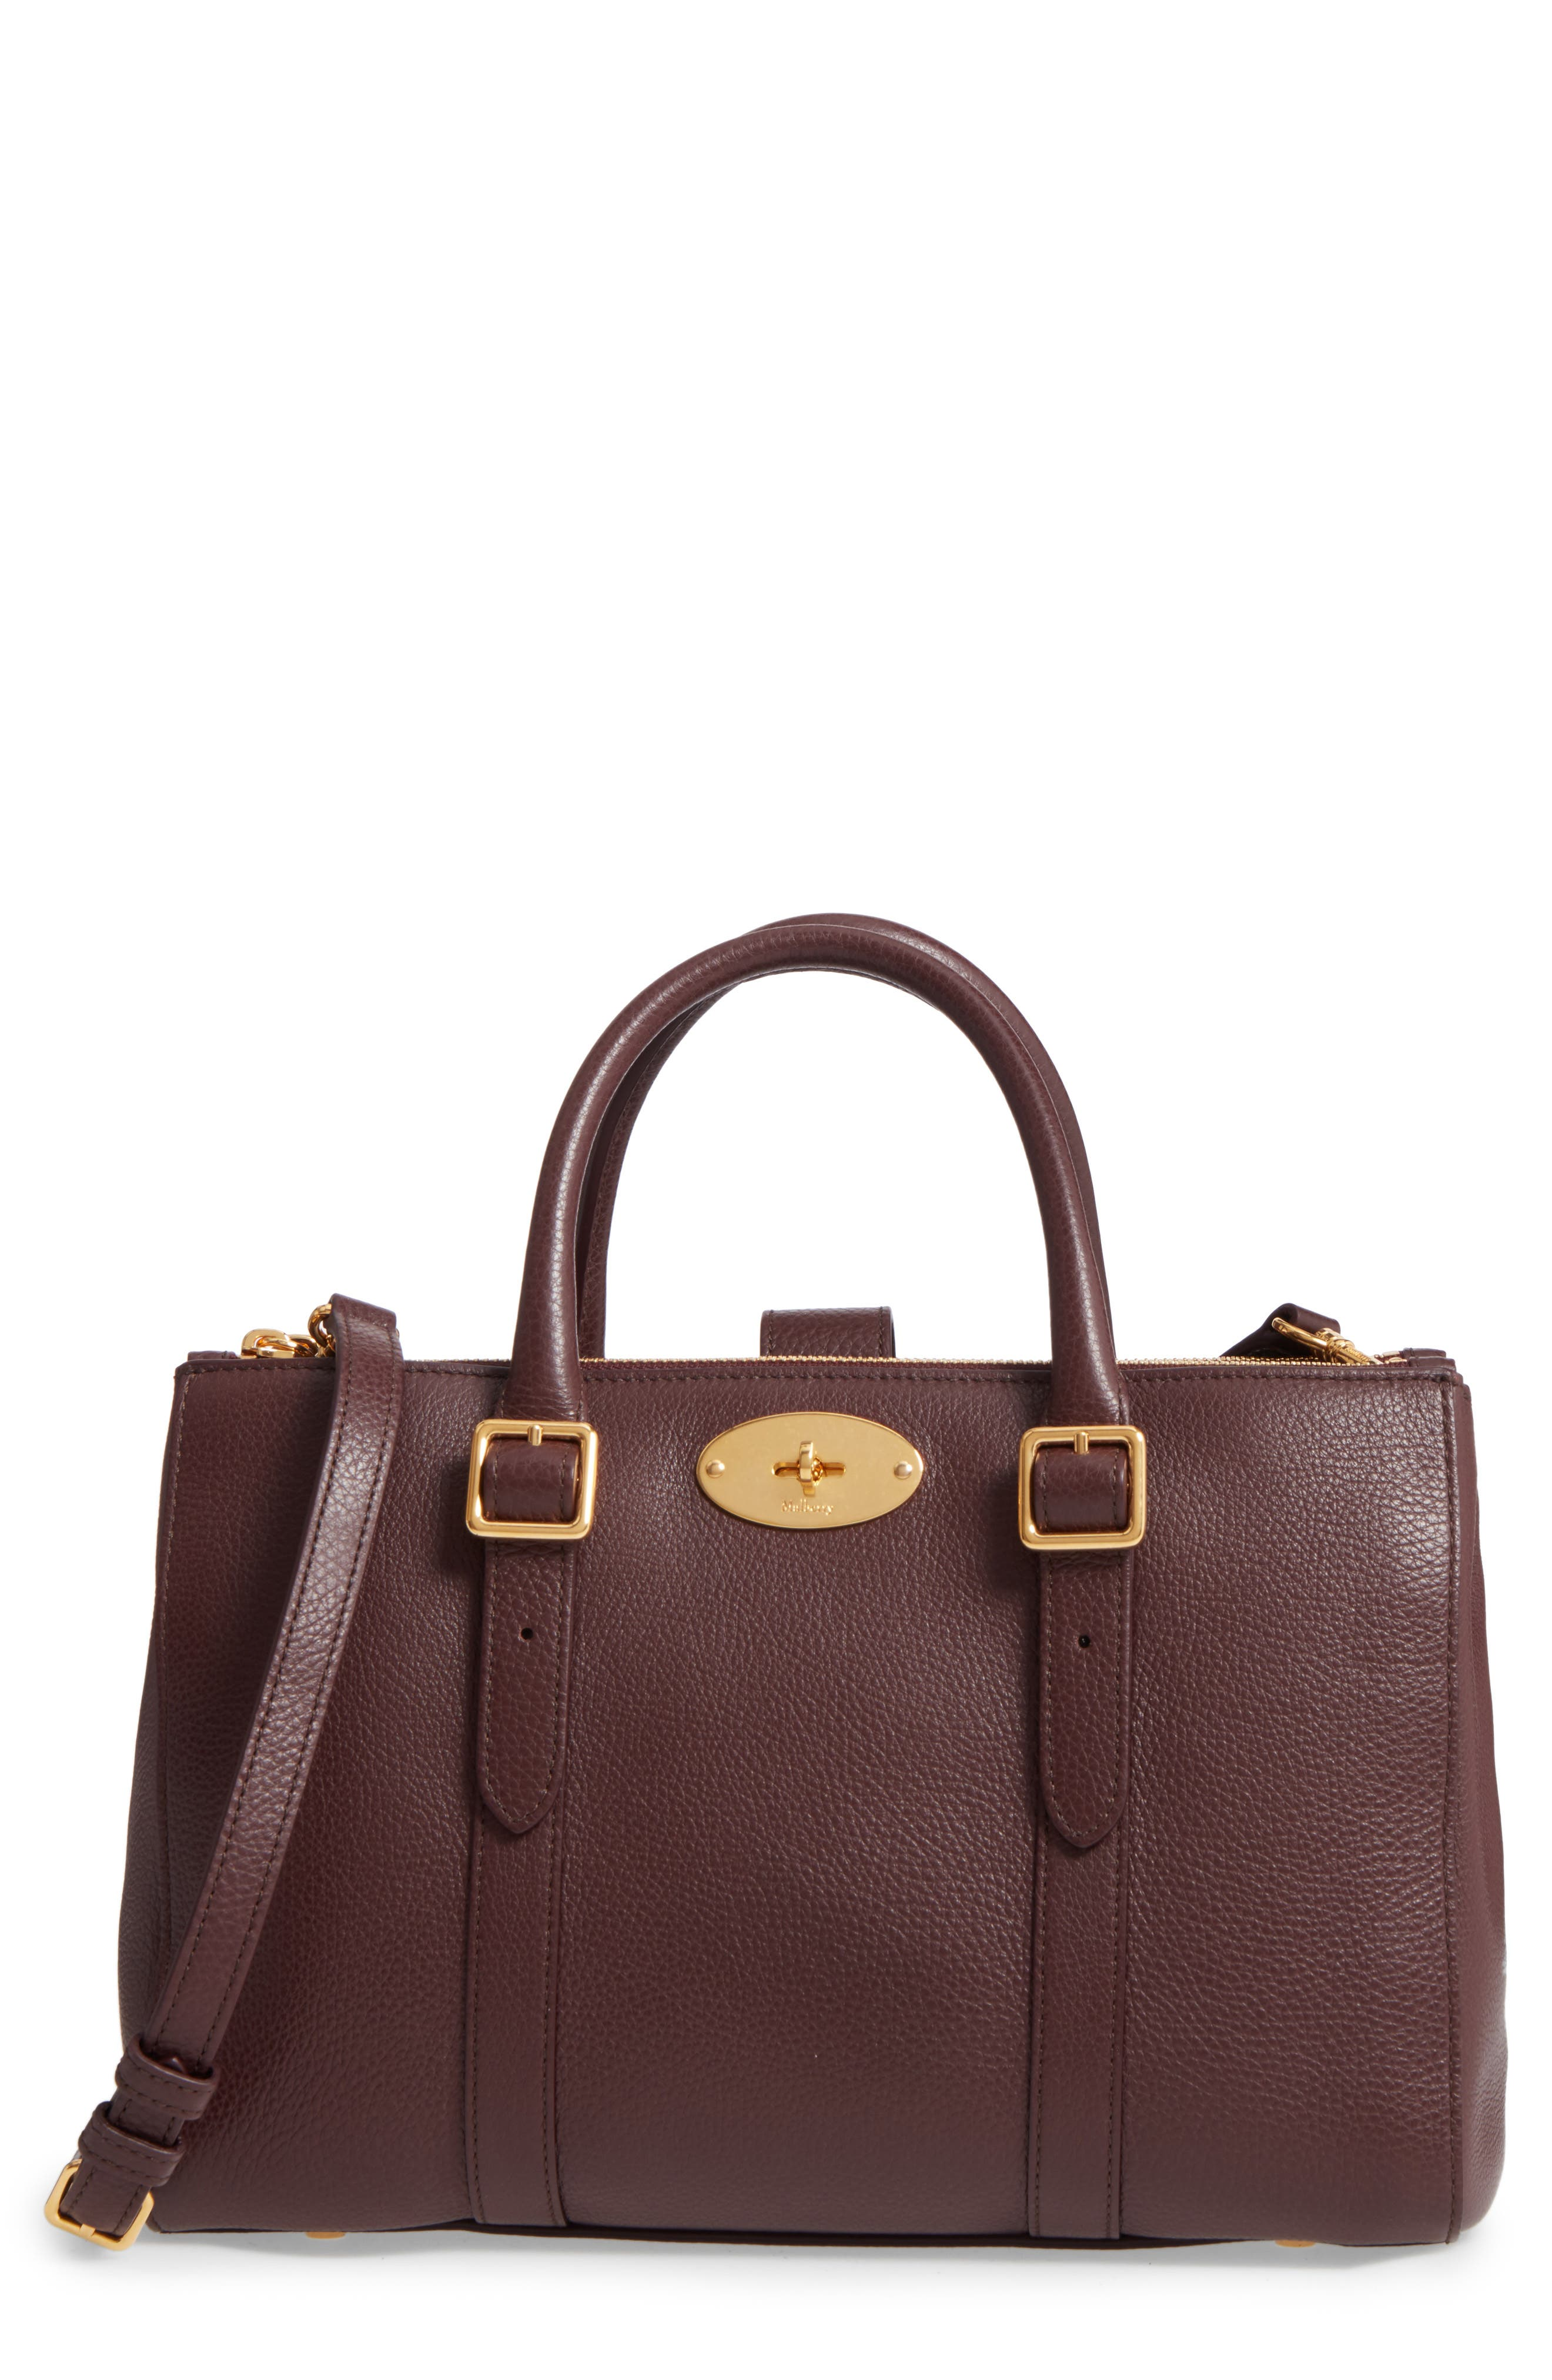 Mulberry Small Bayswater Double Zip Leather Satchel